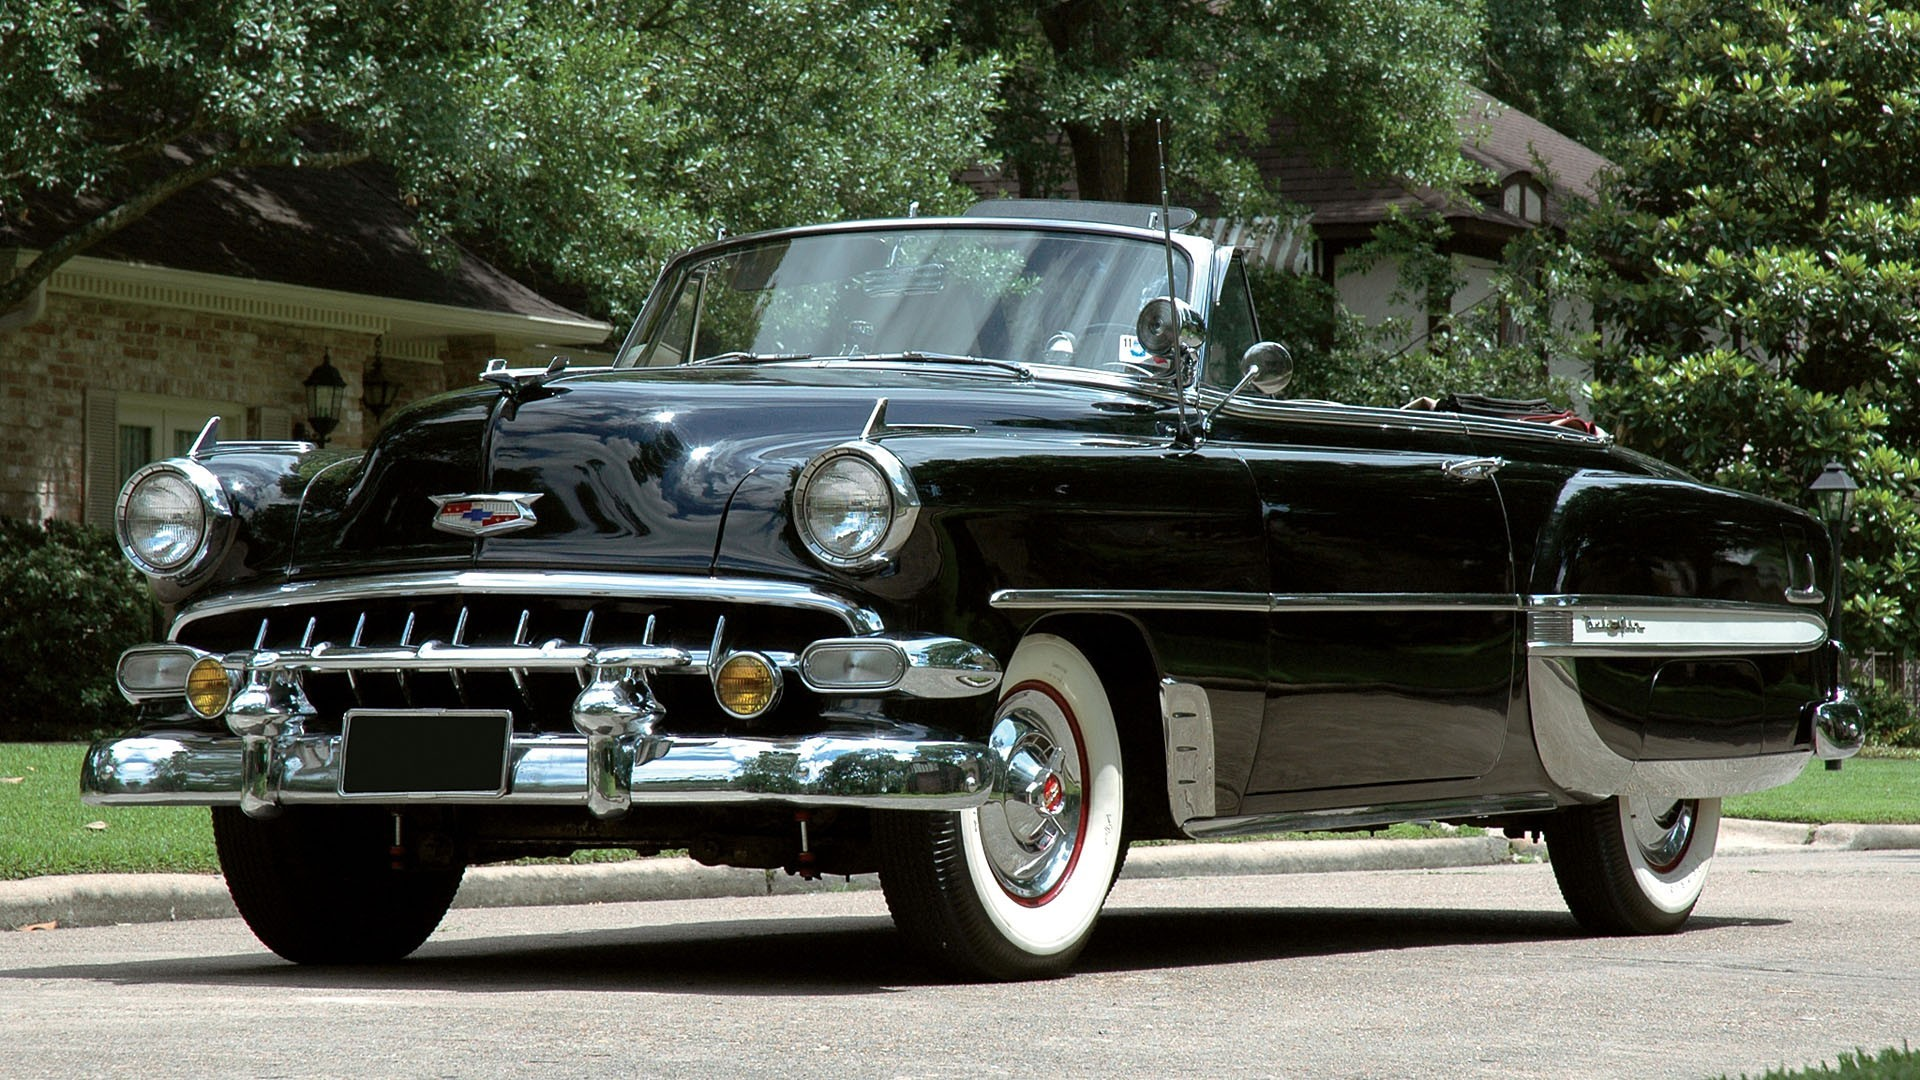 cars Chevrolet Bel Air HD Wallpaper